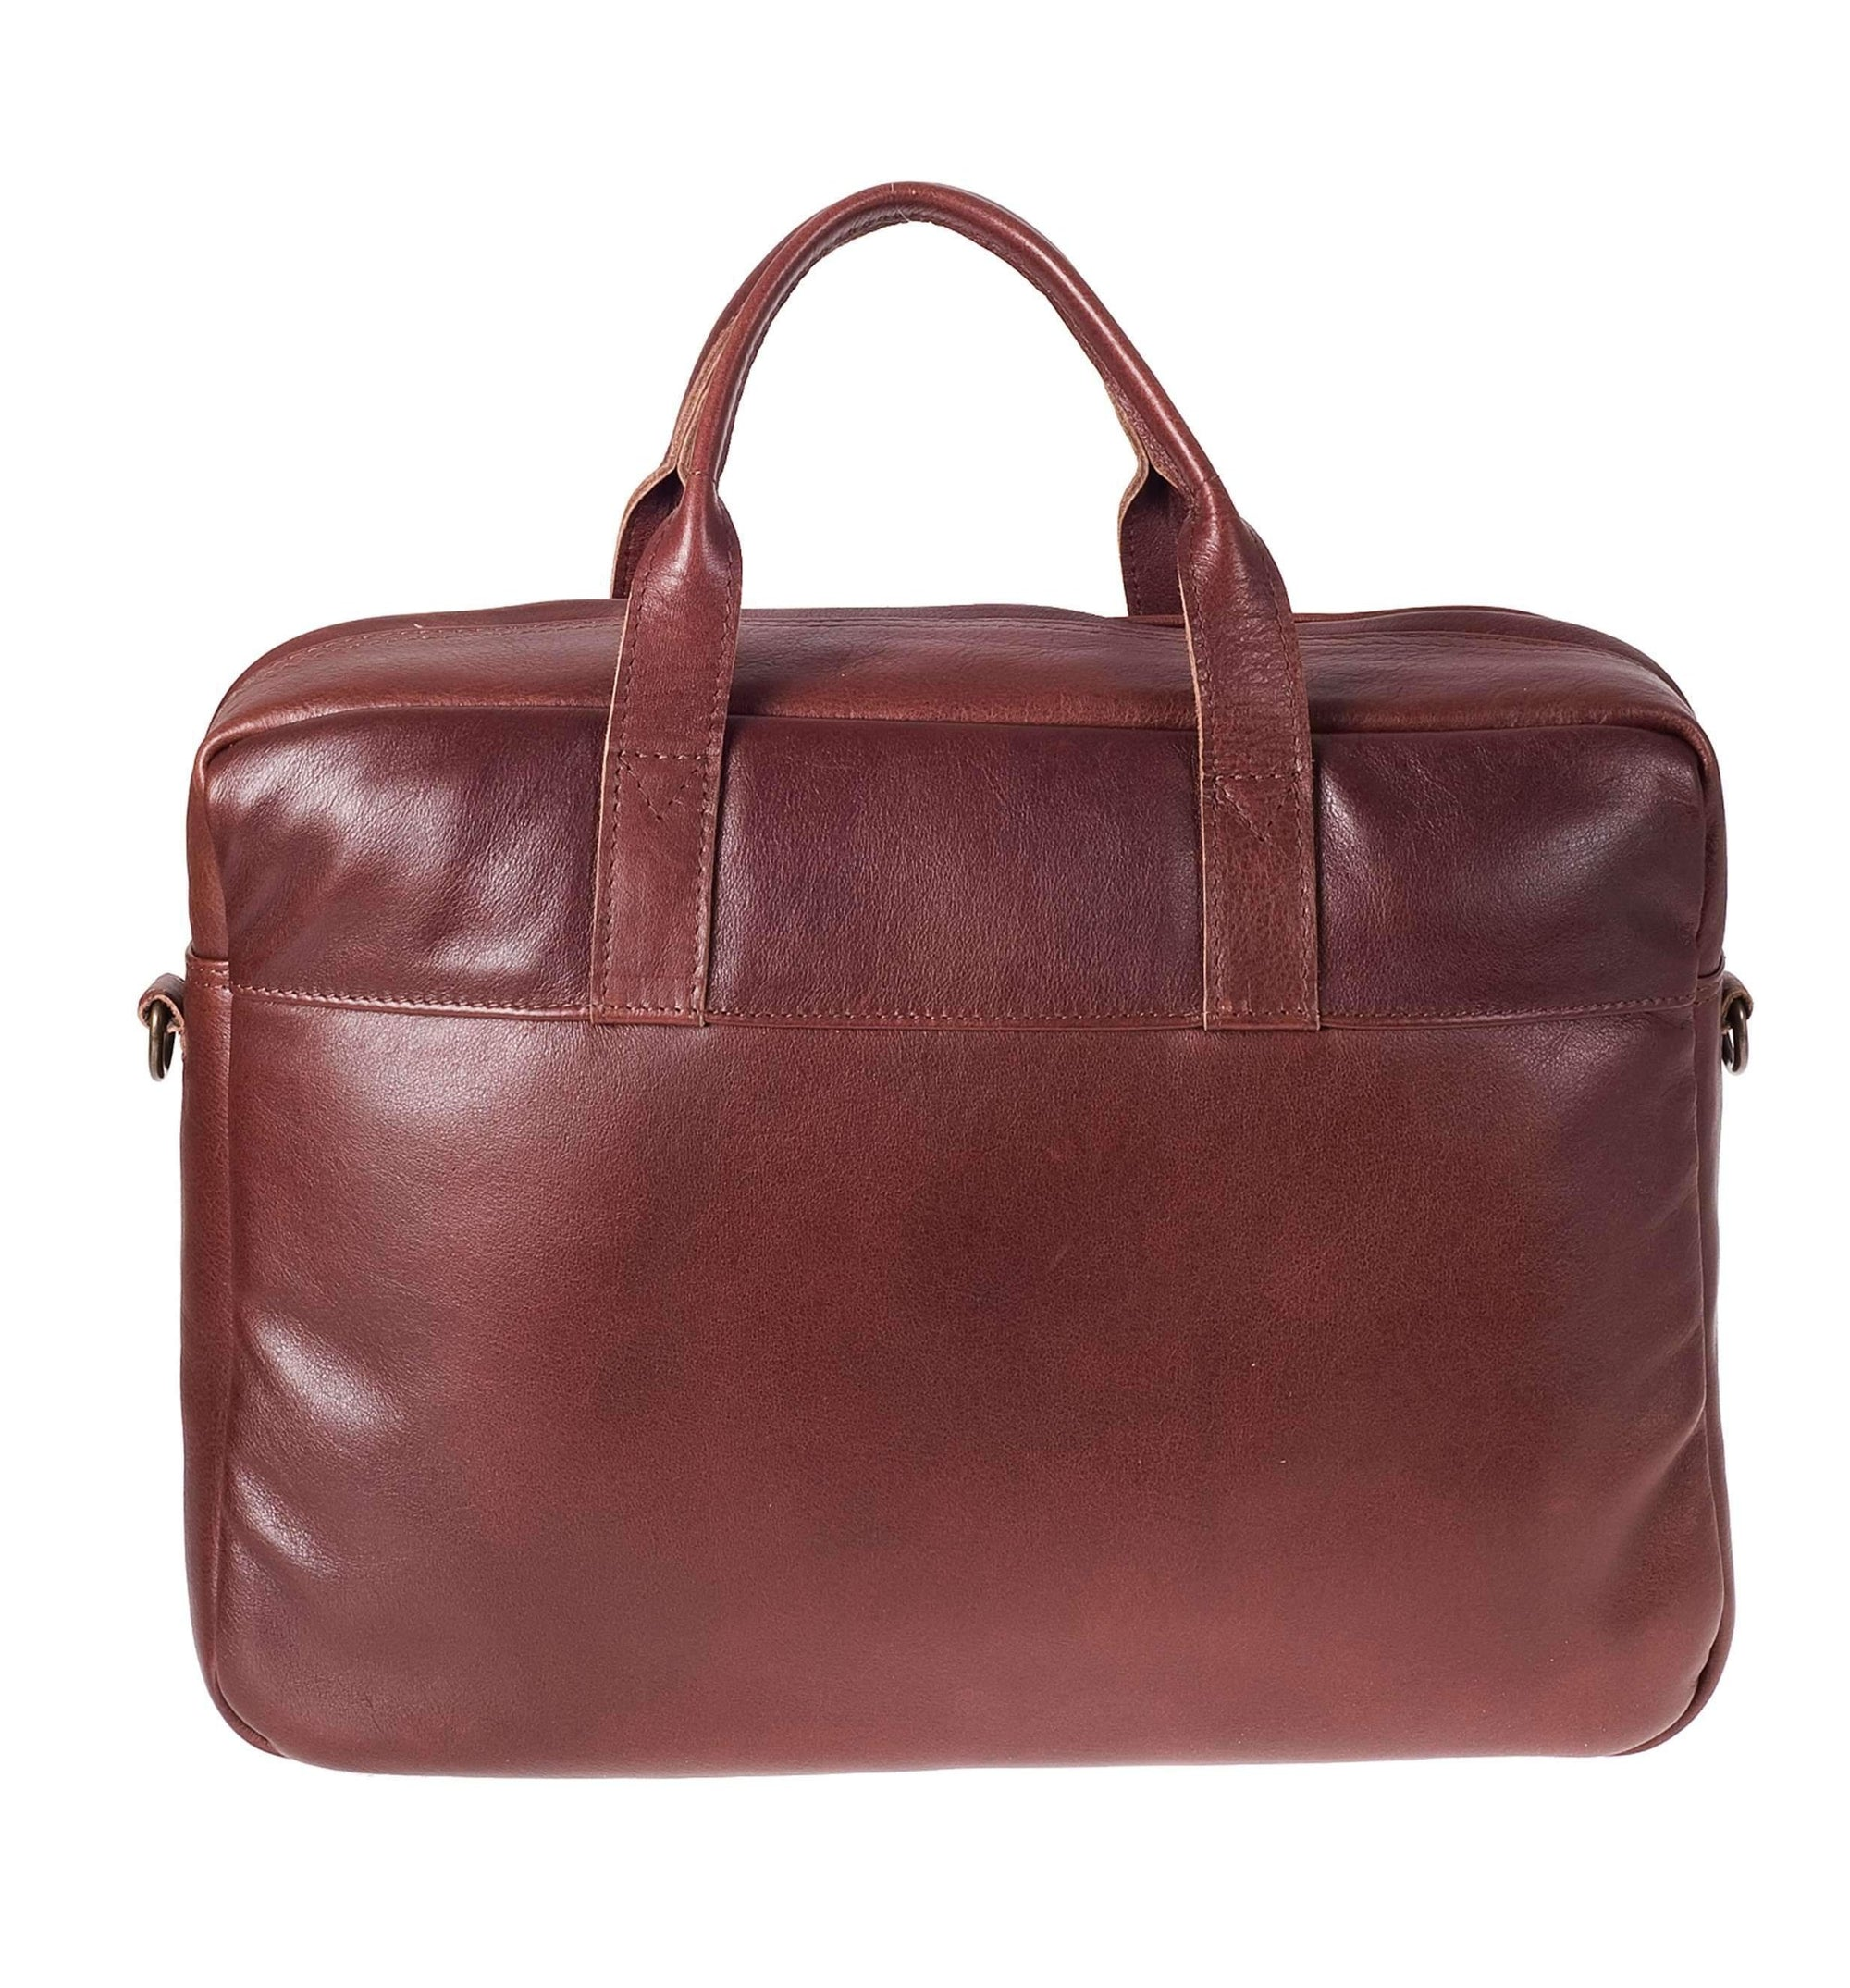 8fcdfe7de9d6 Brief - 15inch Leather Laptop Bag Work CHAPEL Brandy